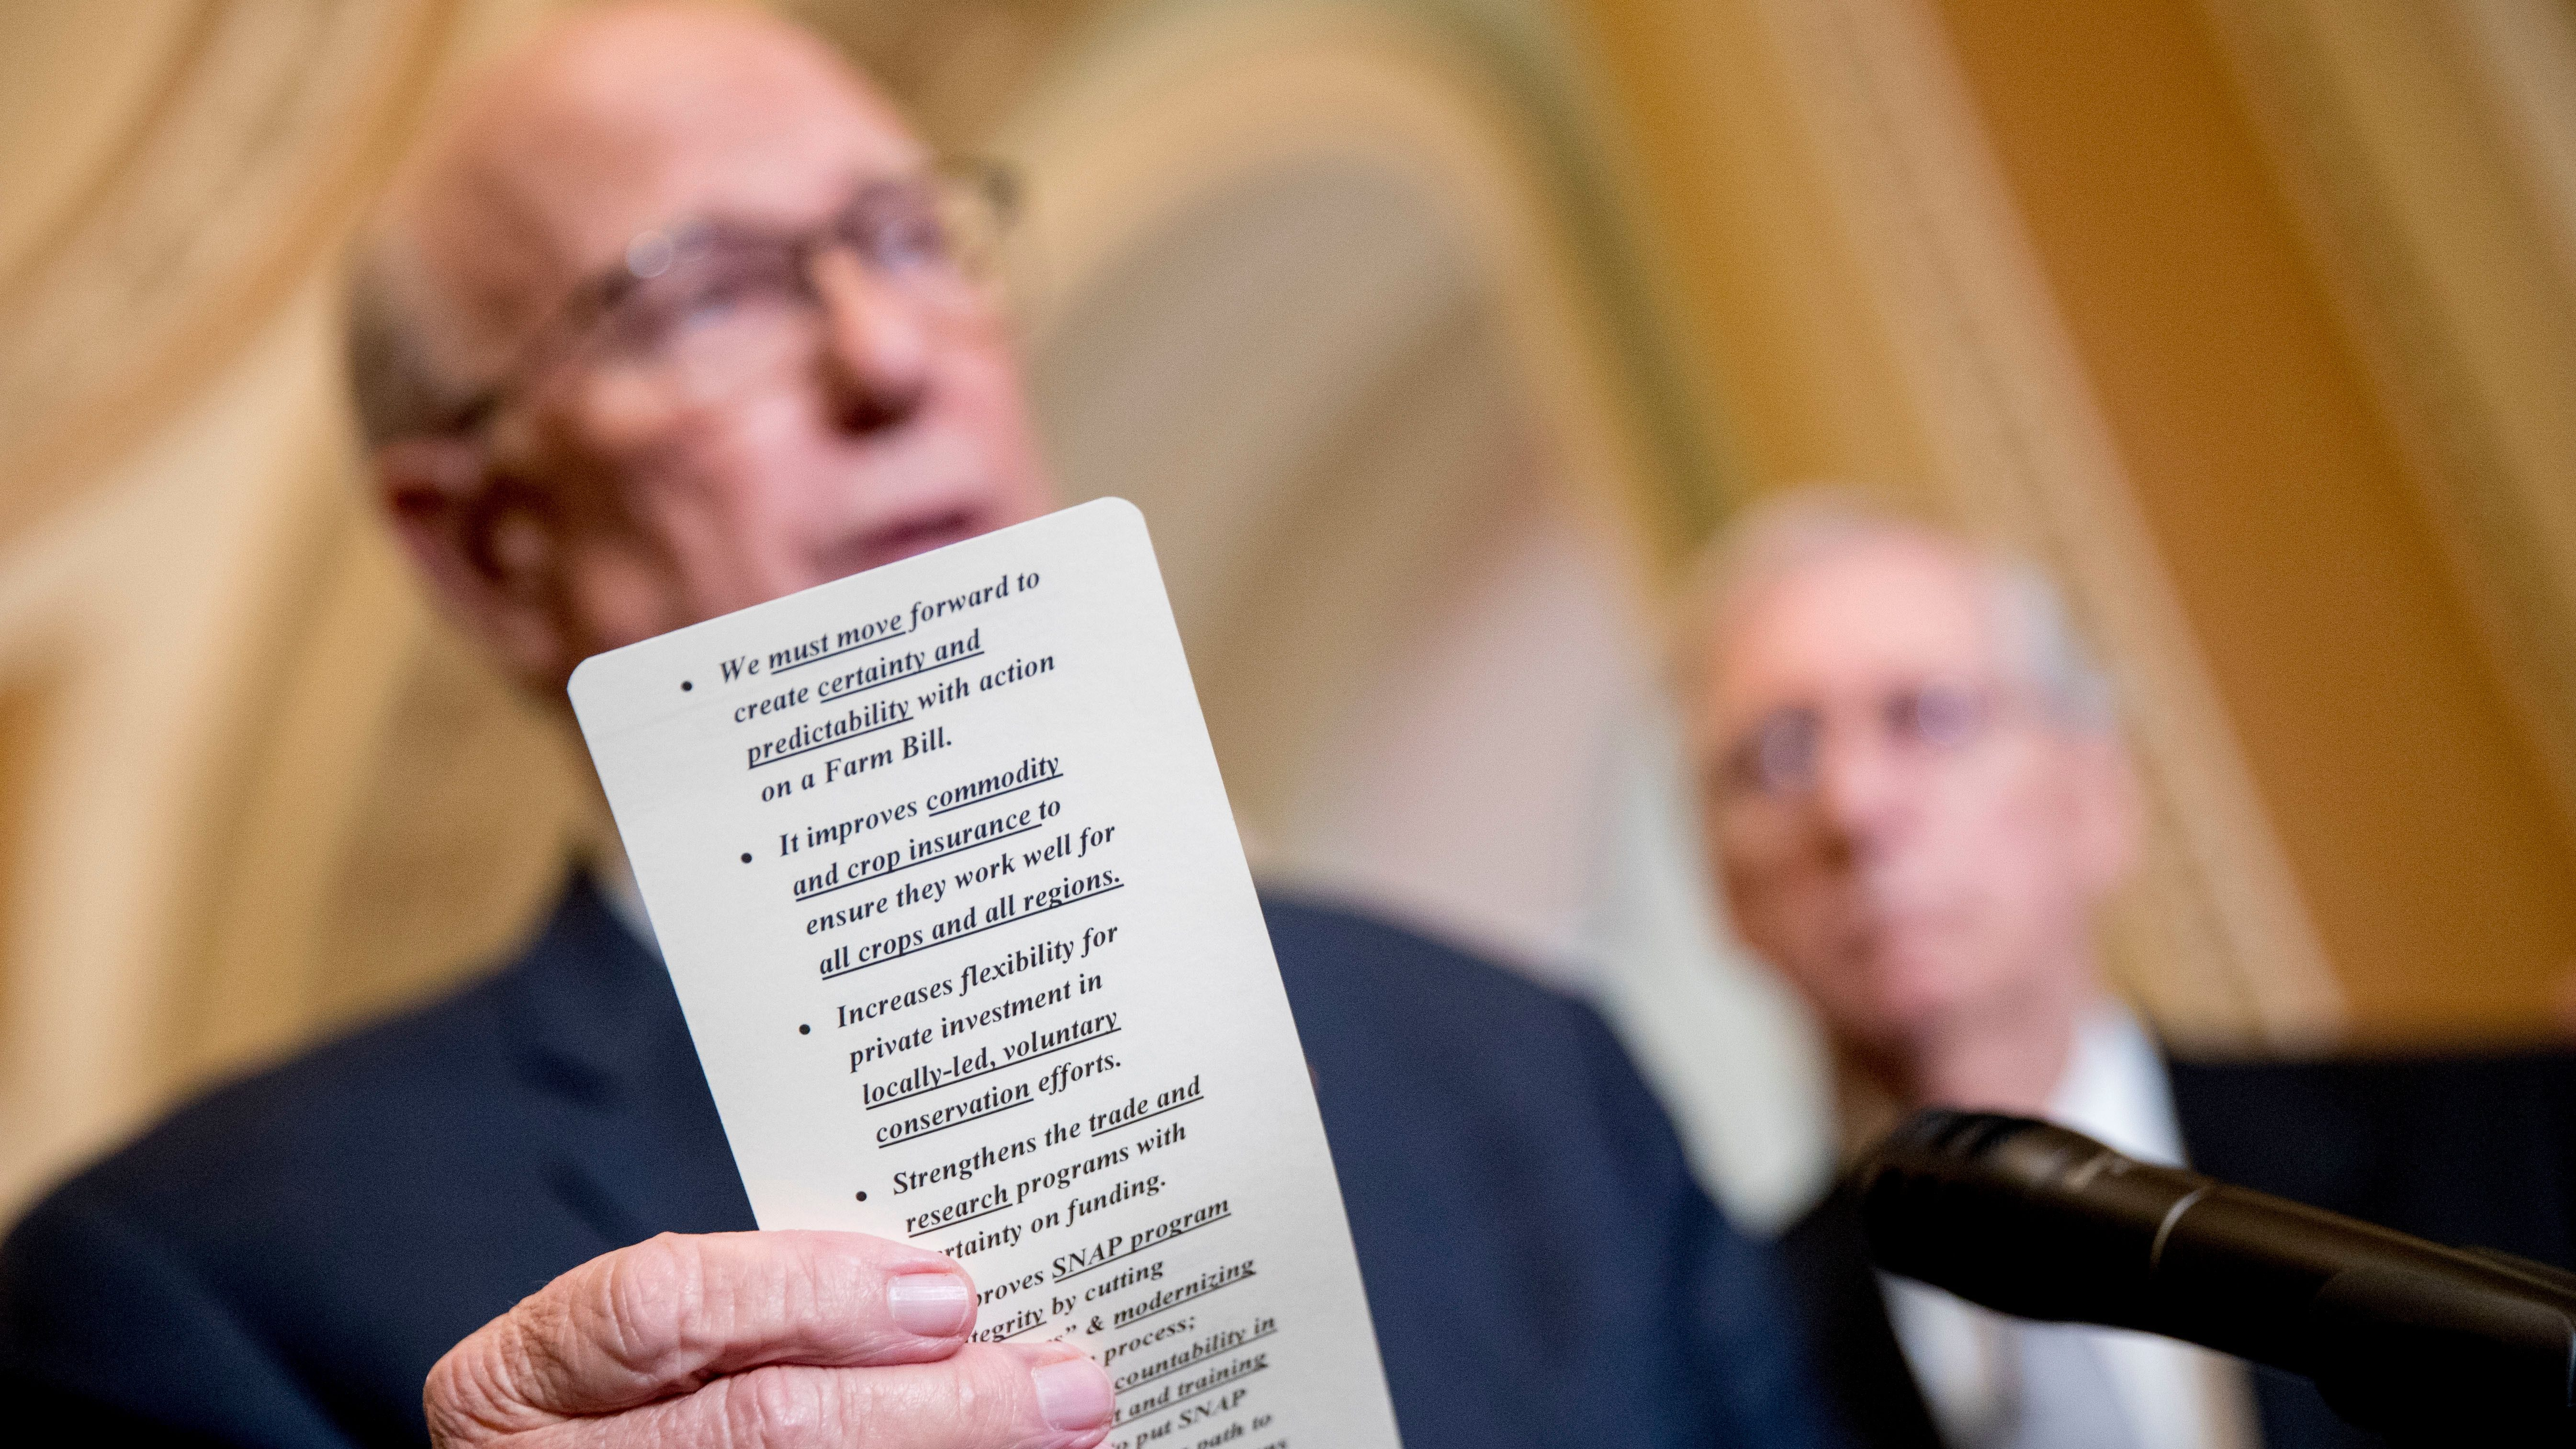 Senator Pat Roberts, accompanied by Senate Majority Leader Mitch McConnell, reads from notes on the farm bill as he speaks with reporters on Capitol Hill, on June 26, 2018.